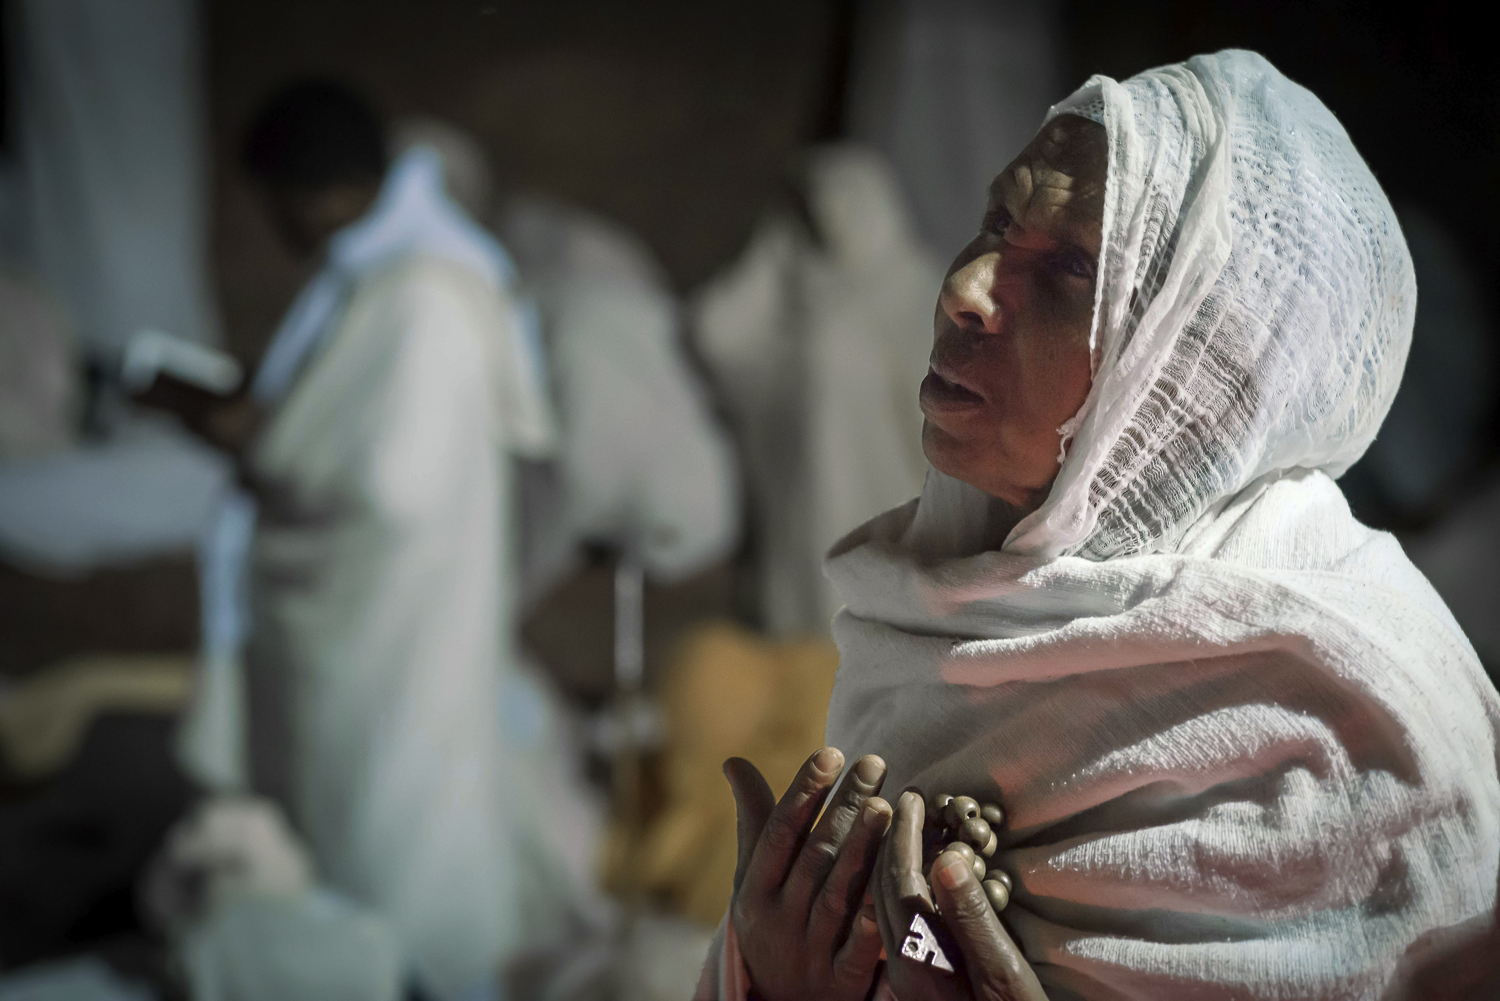 A Christian pilgrim with prayer beads on Christmas Eve night, at the rock church of Lalibela, Ethiopia. Photo by Chris Roche.